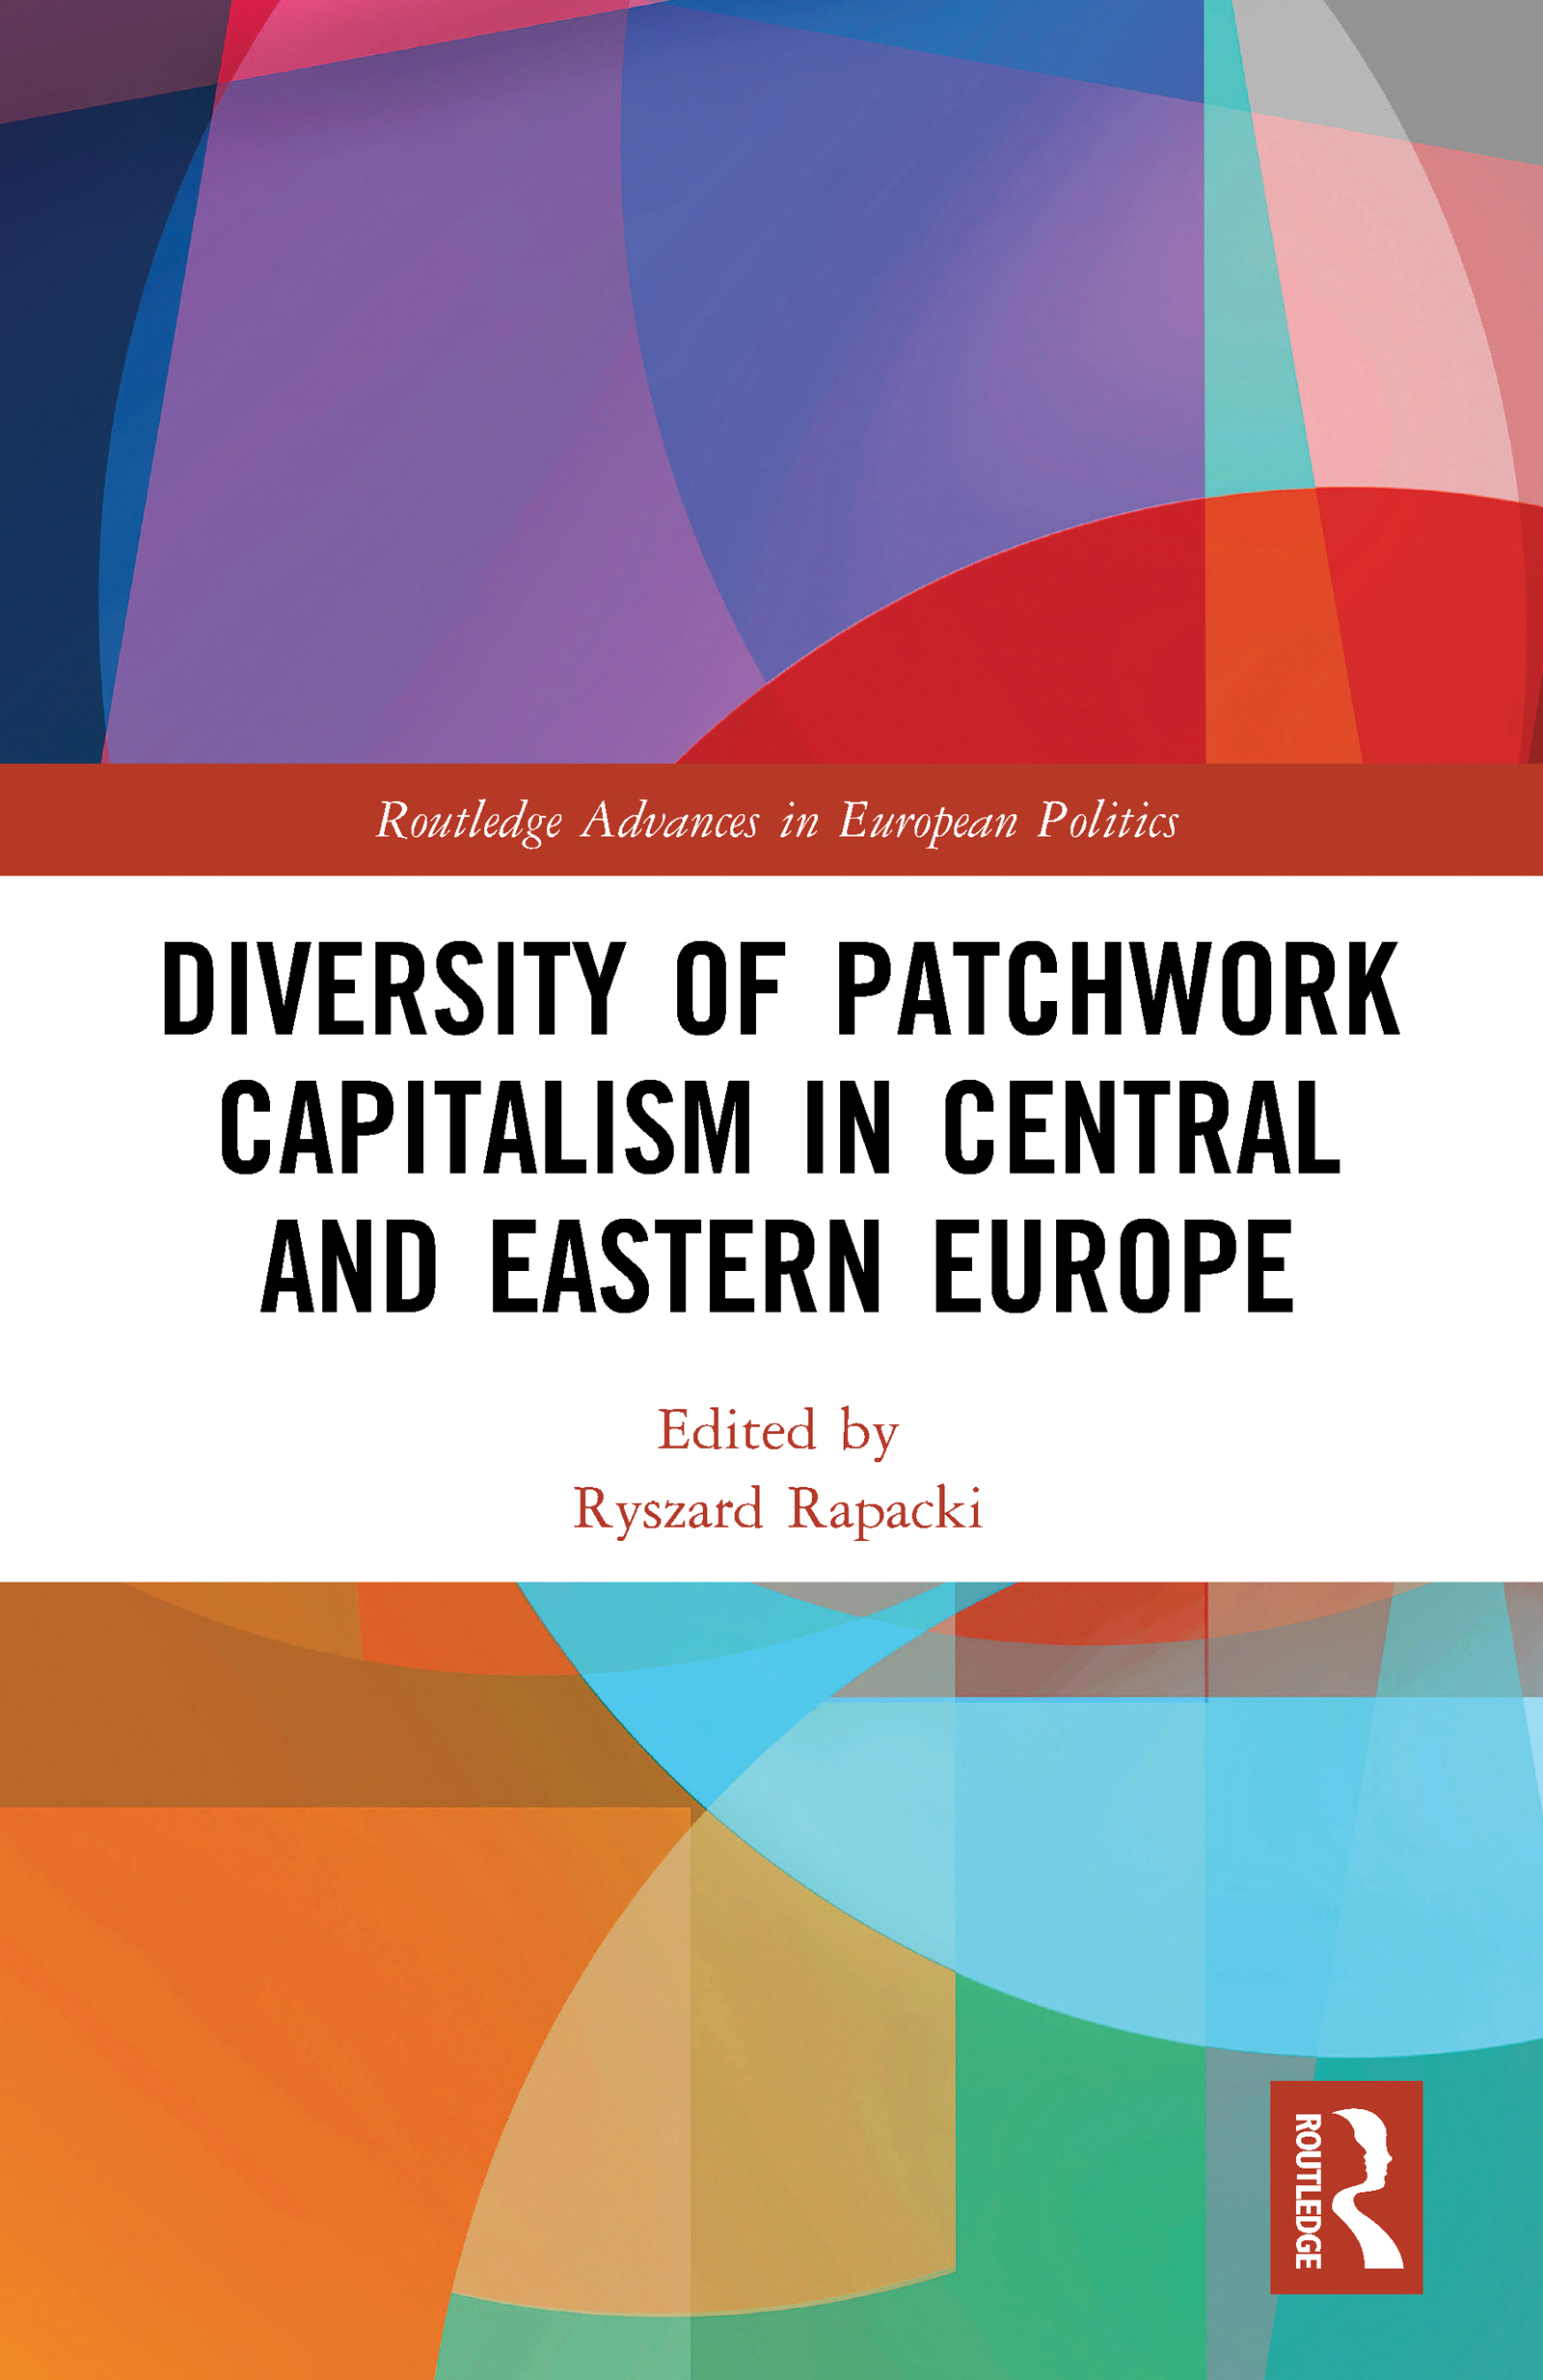 Diversity of Patchwork Capitalism in Central and Eastern Europe